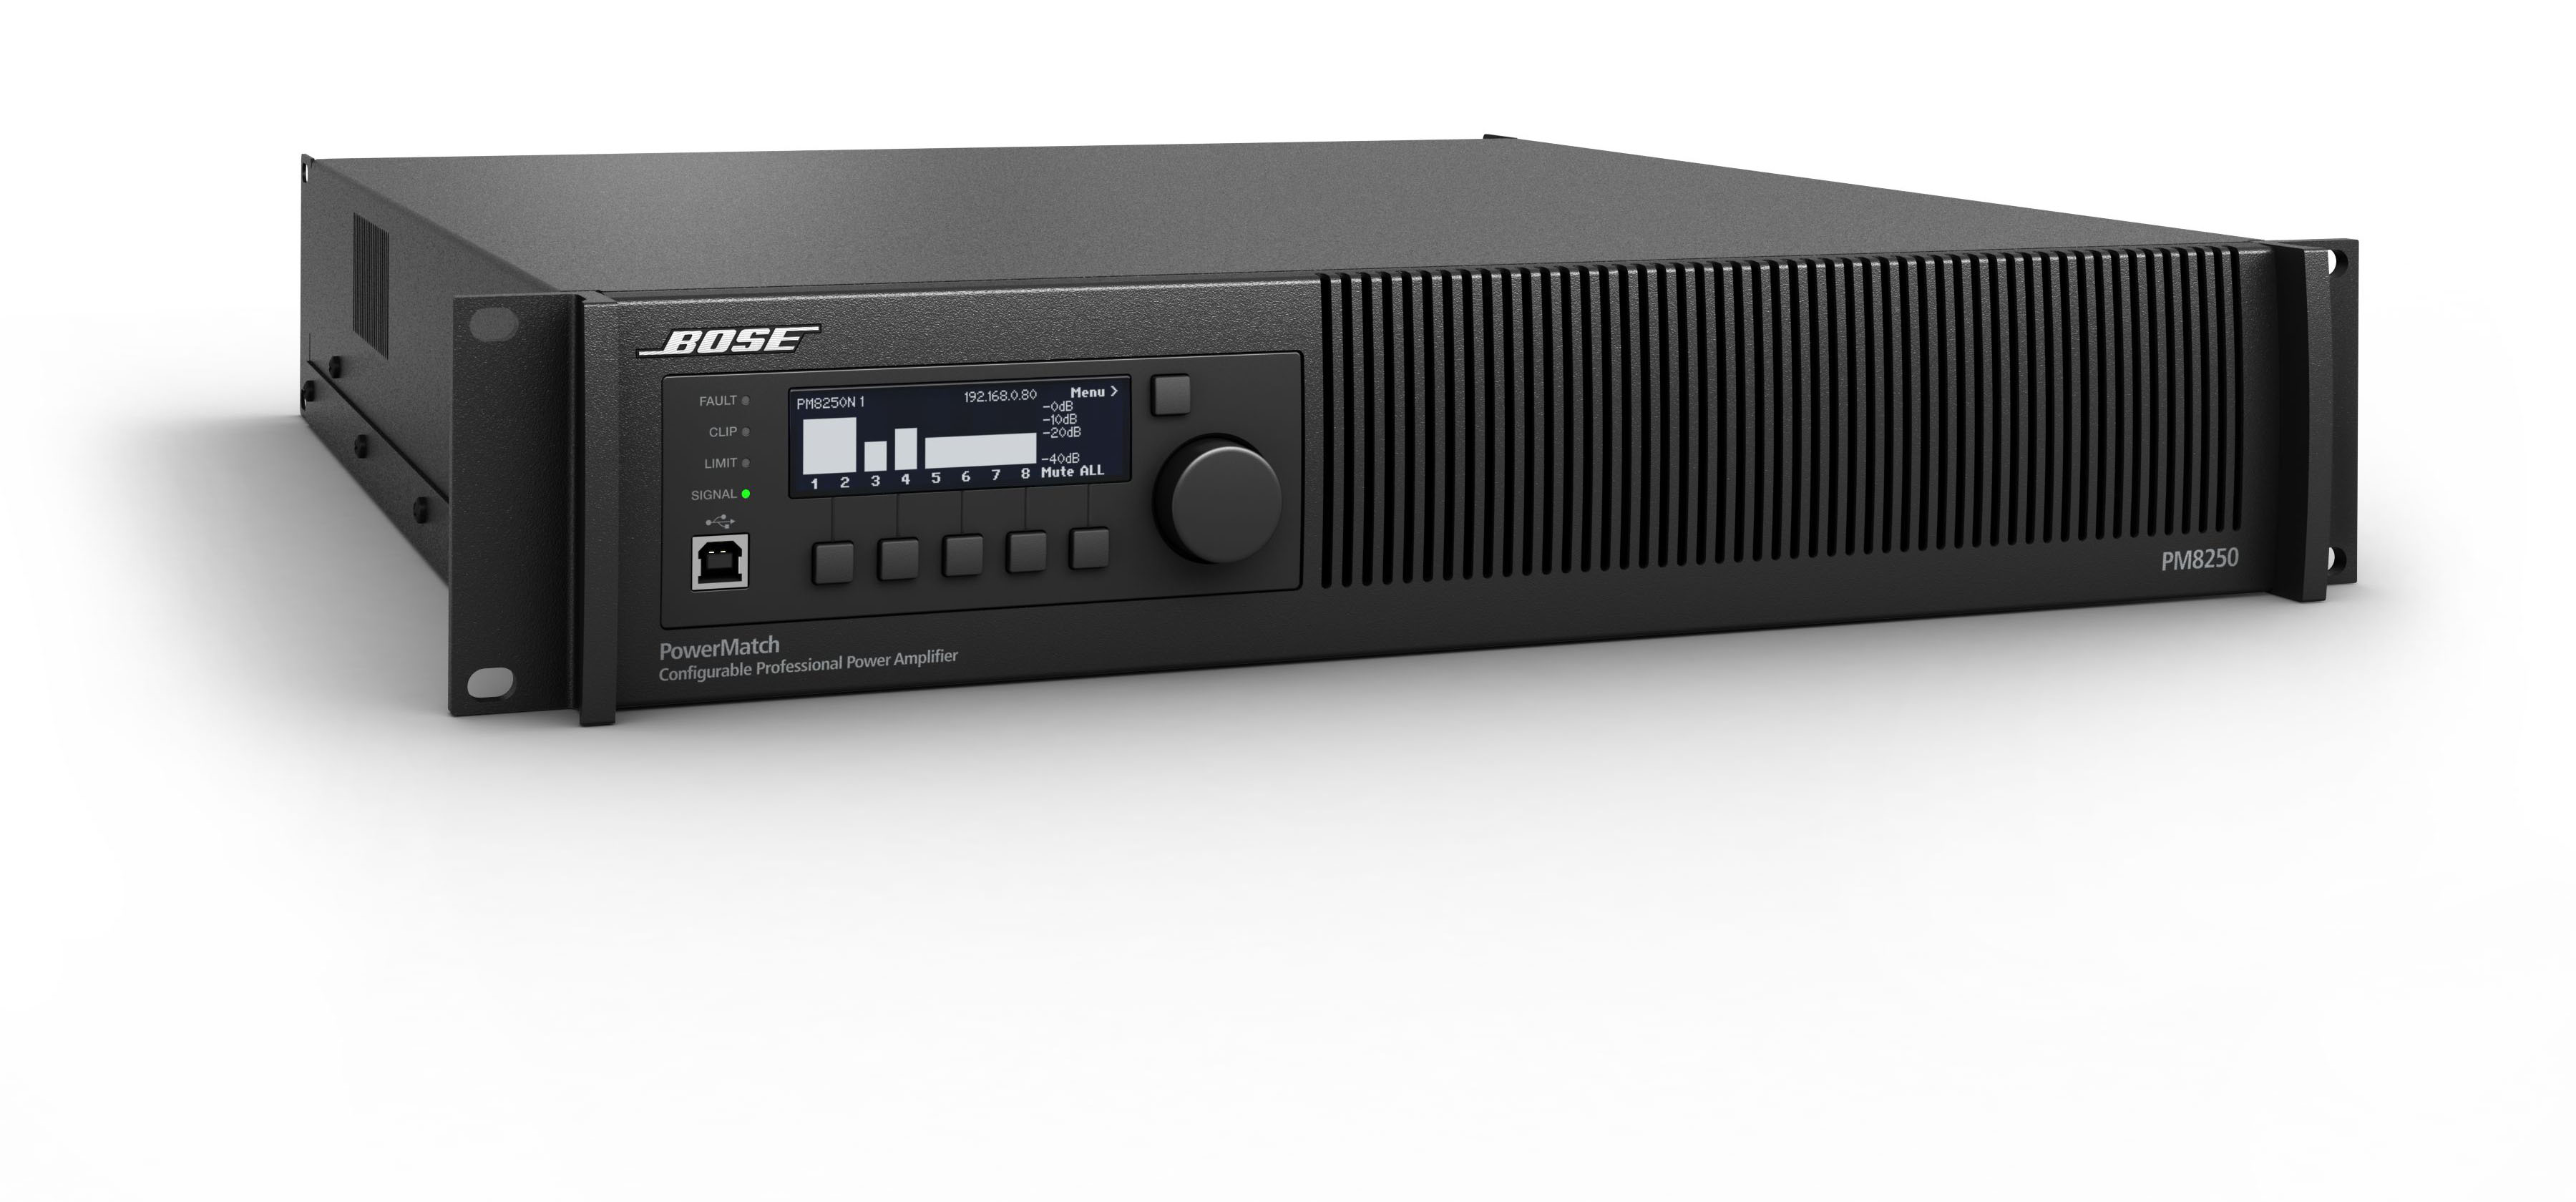 Présentation de l'amplificateur Bose PowerMatch PM8250 ControlSound Division professionnelle